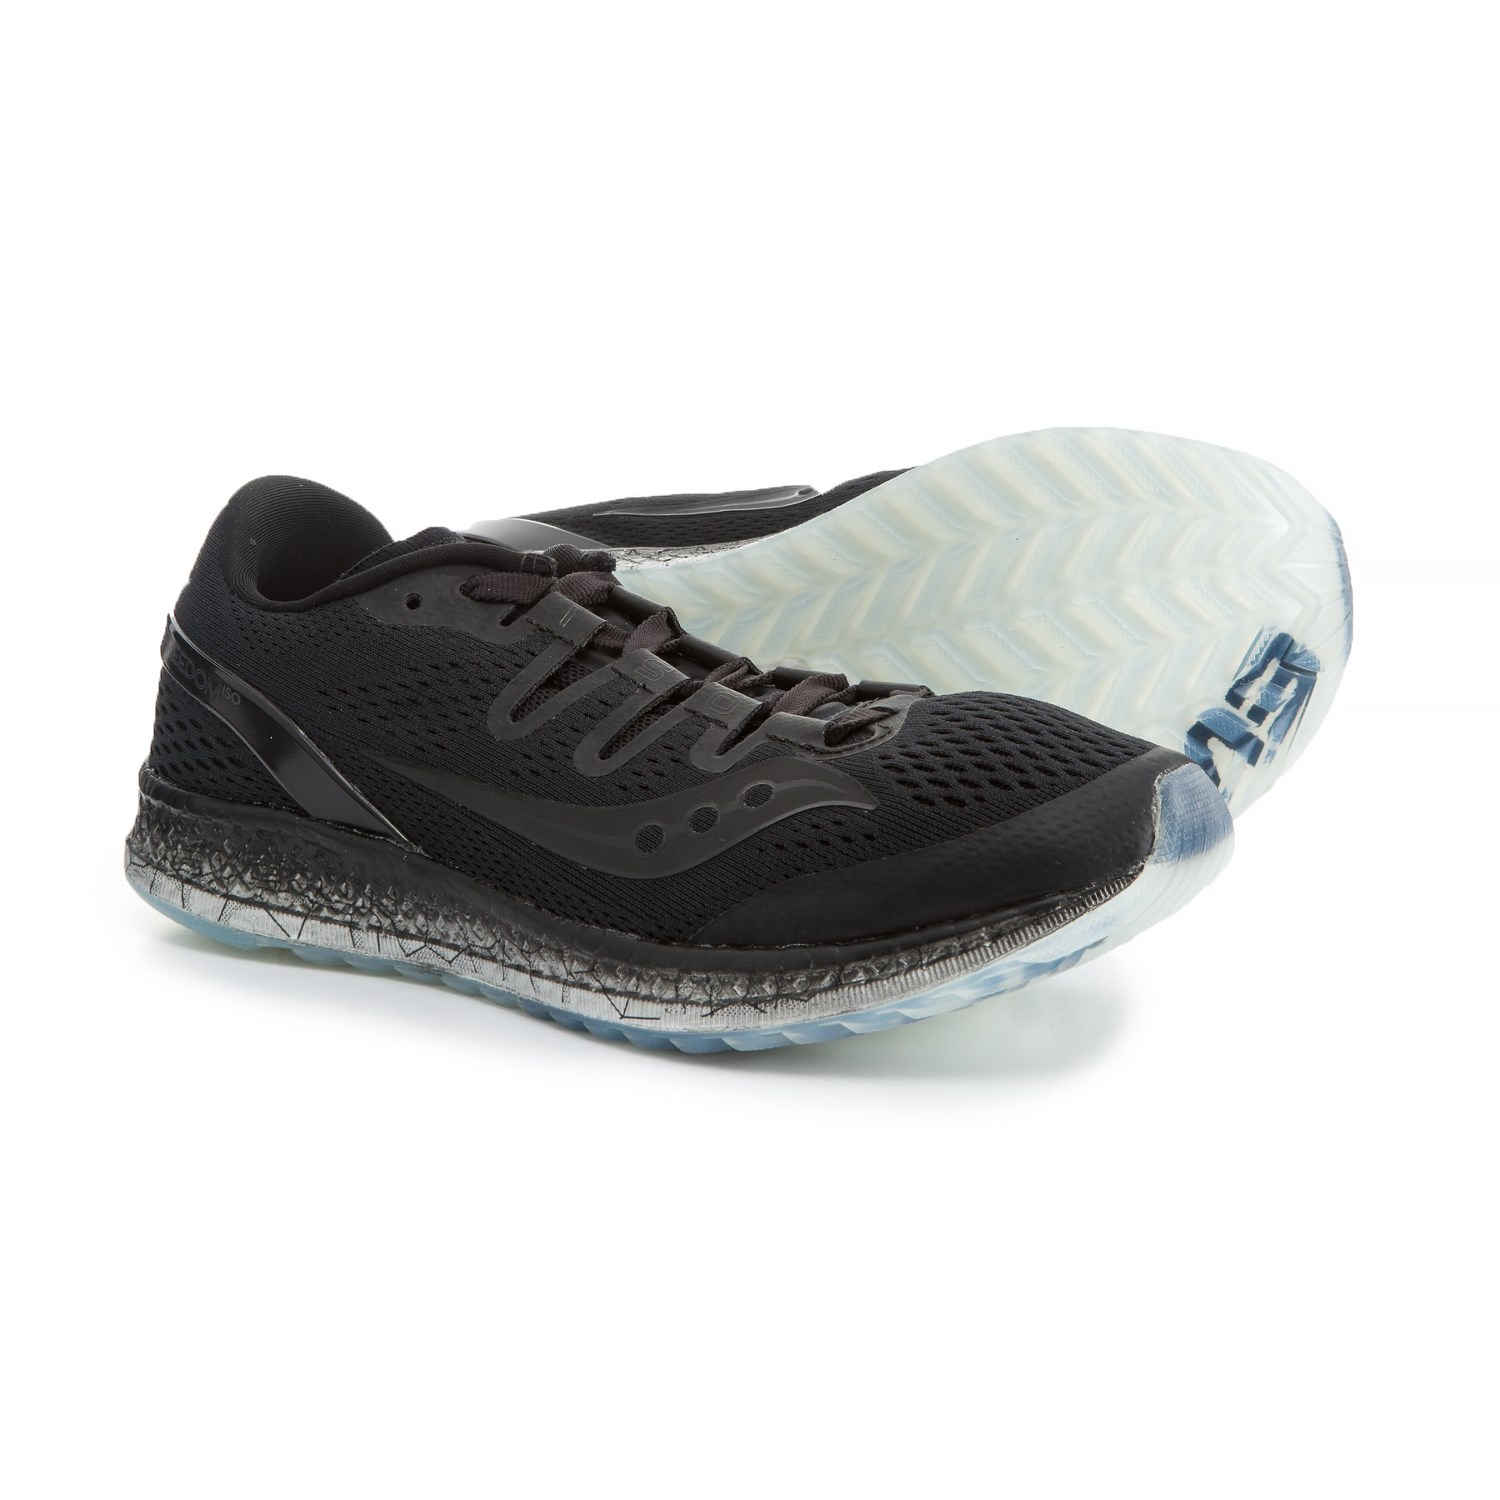 9186623bc9 Saucony Freedom ISO Running Shoes (For Women)